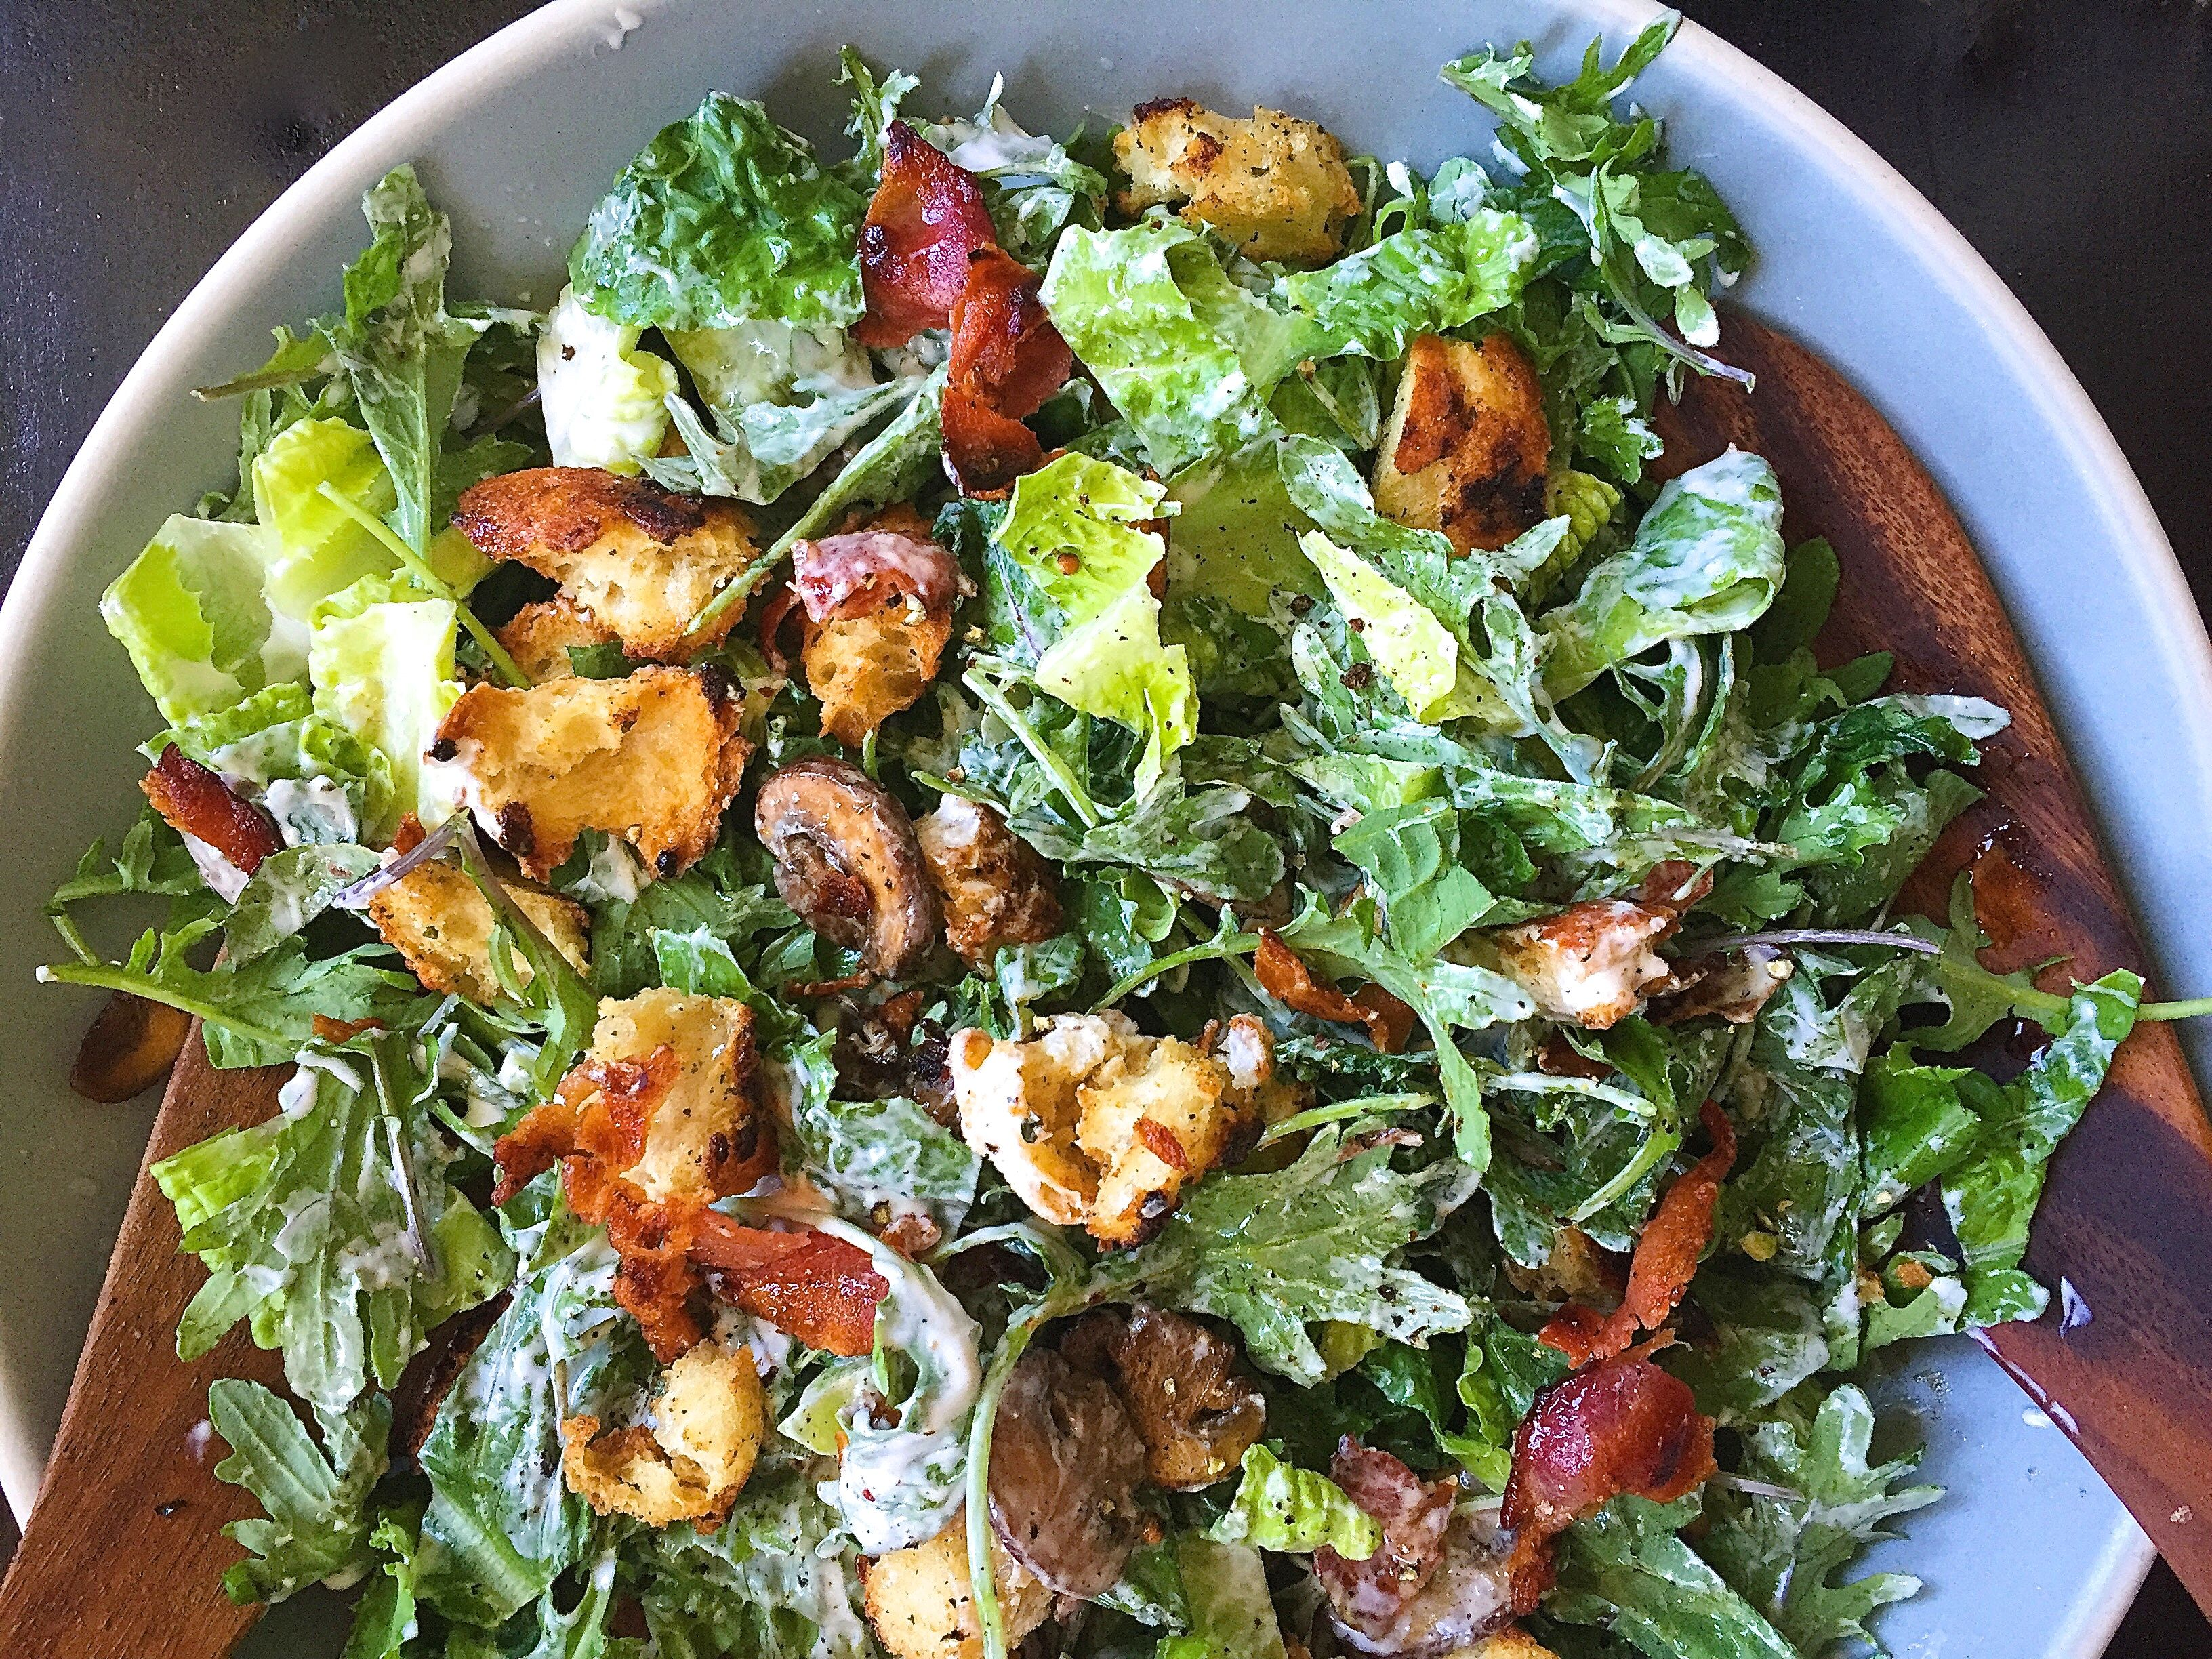 Crunchy Green Salad with Croutons Recipe advise